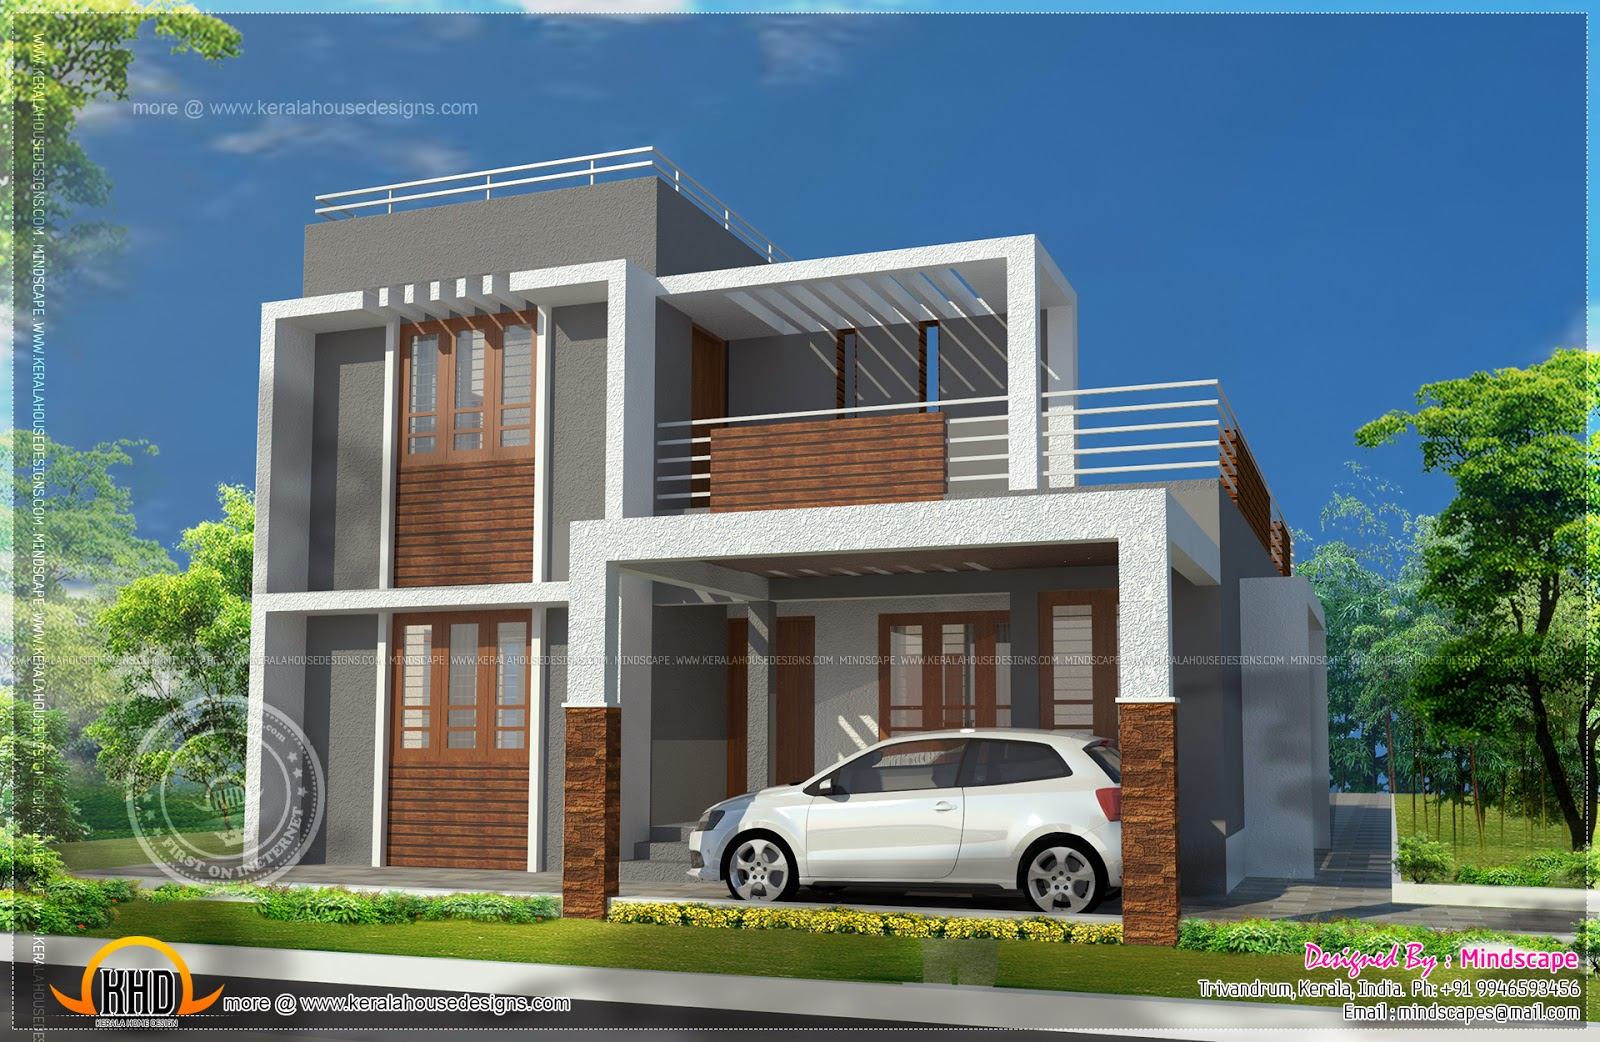 Small double storied contemporary house plan kerala home for Small contemporary house plans